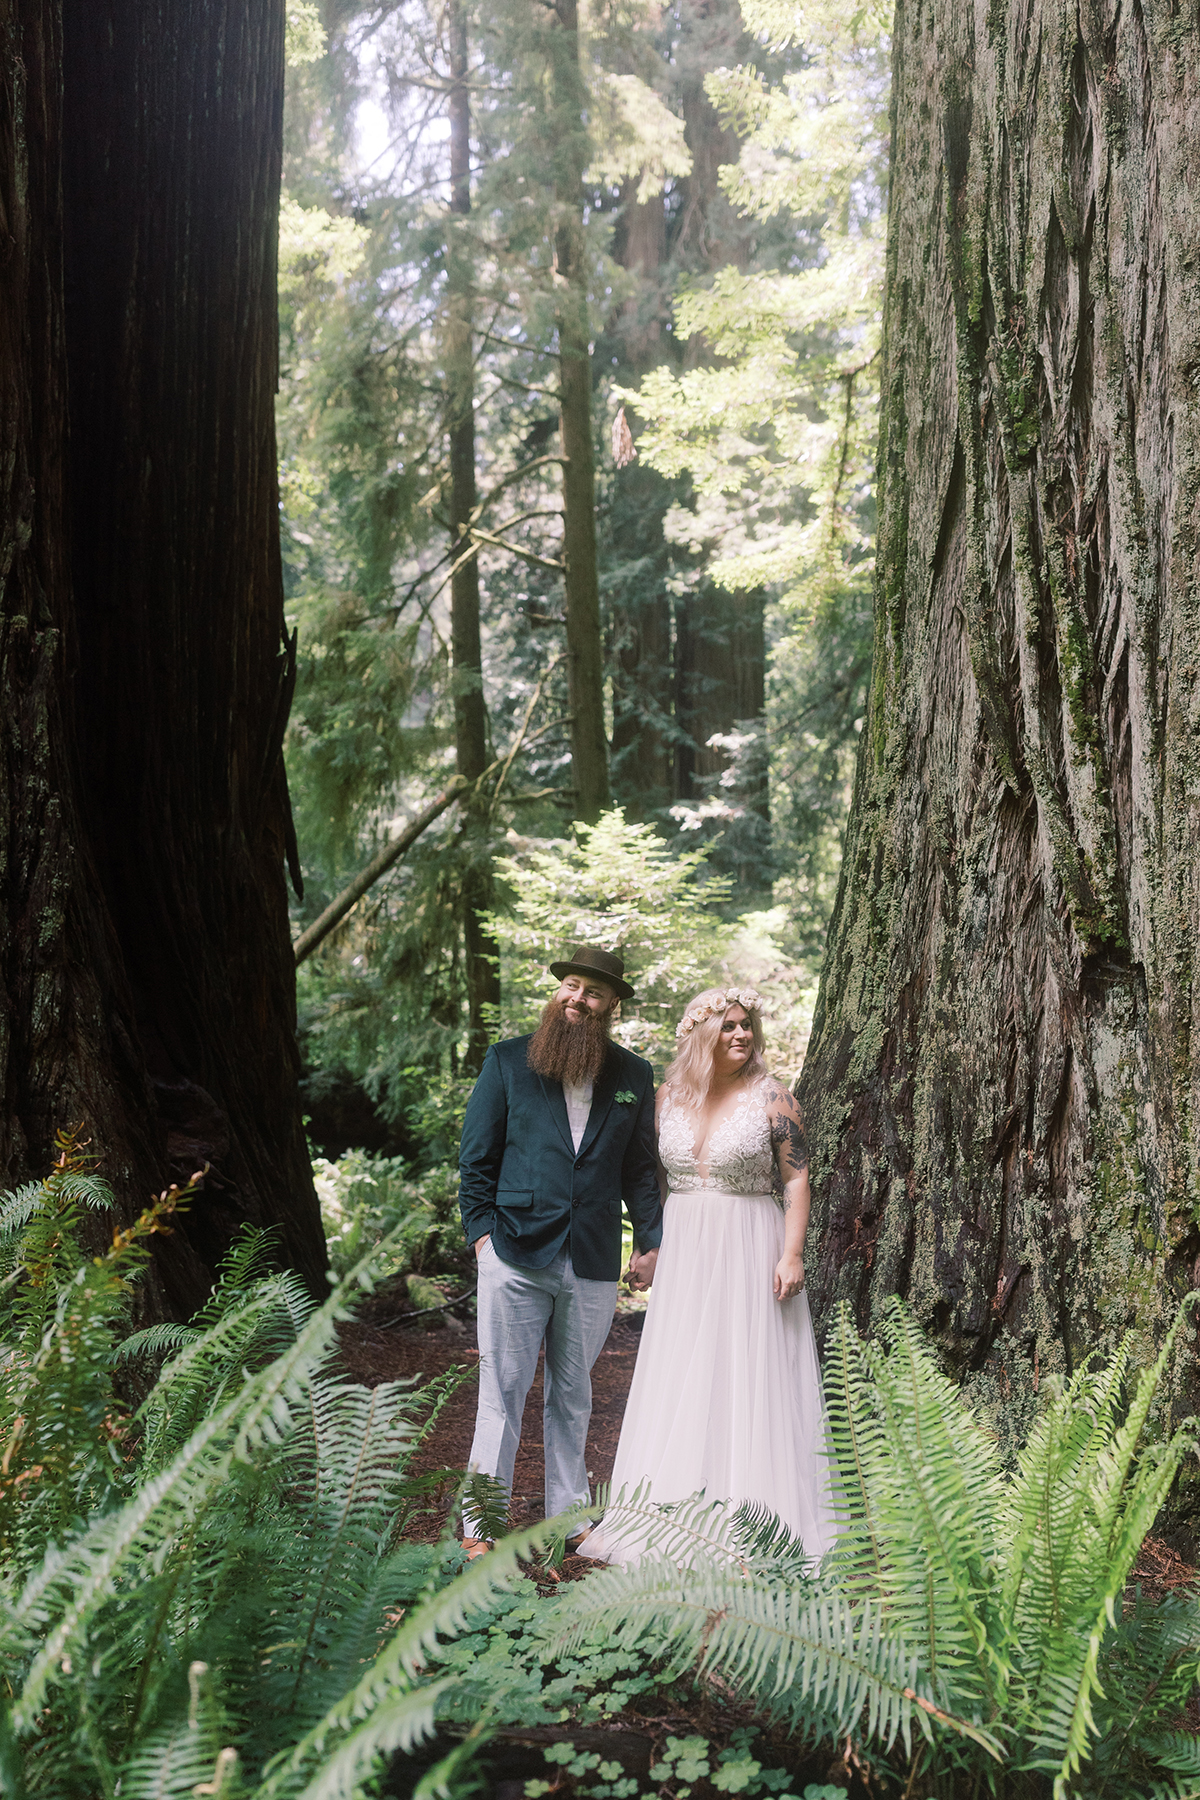 Prairie-Creek-Redwoods-State-Park-wedding-elopement-photos-03